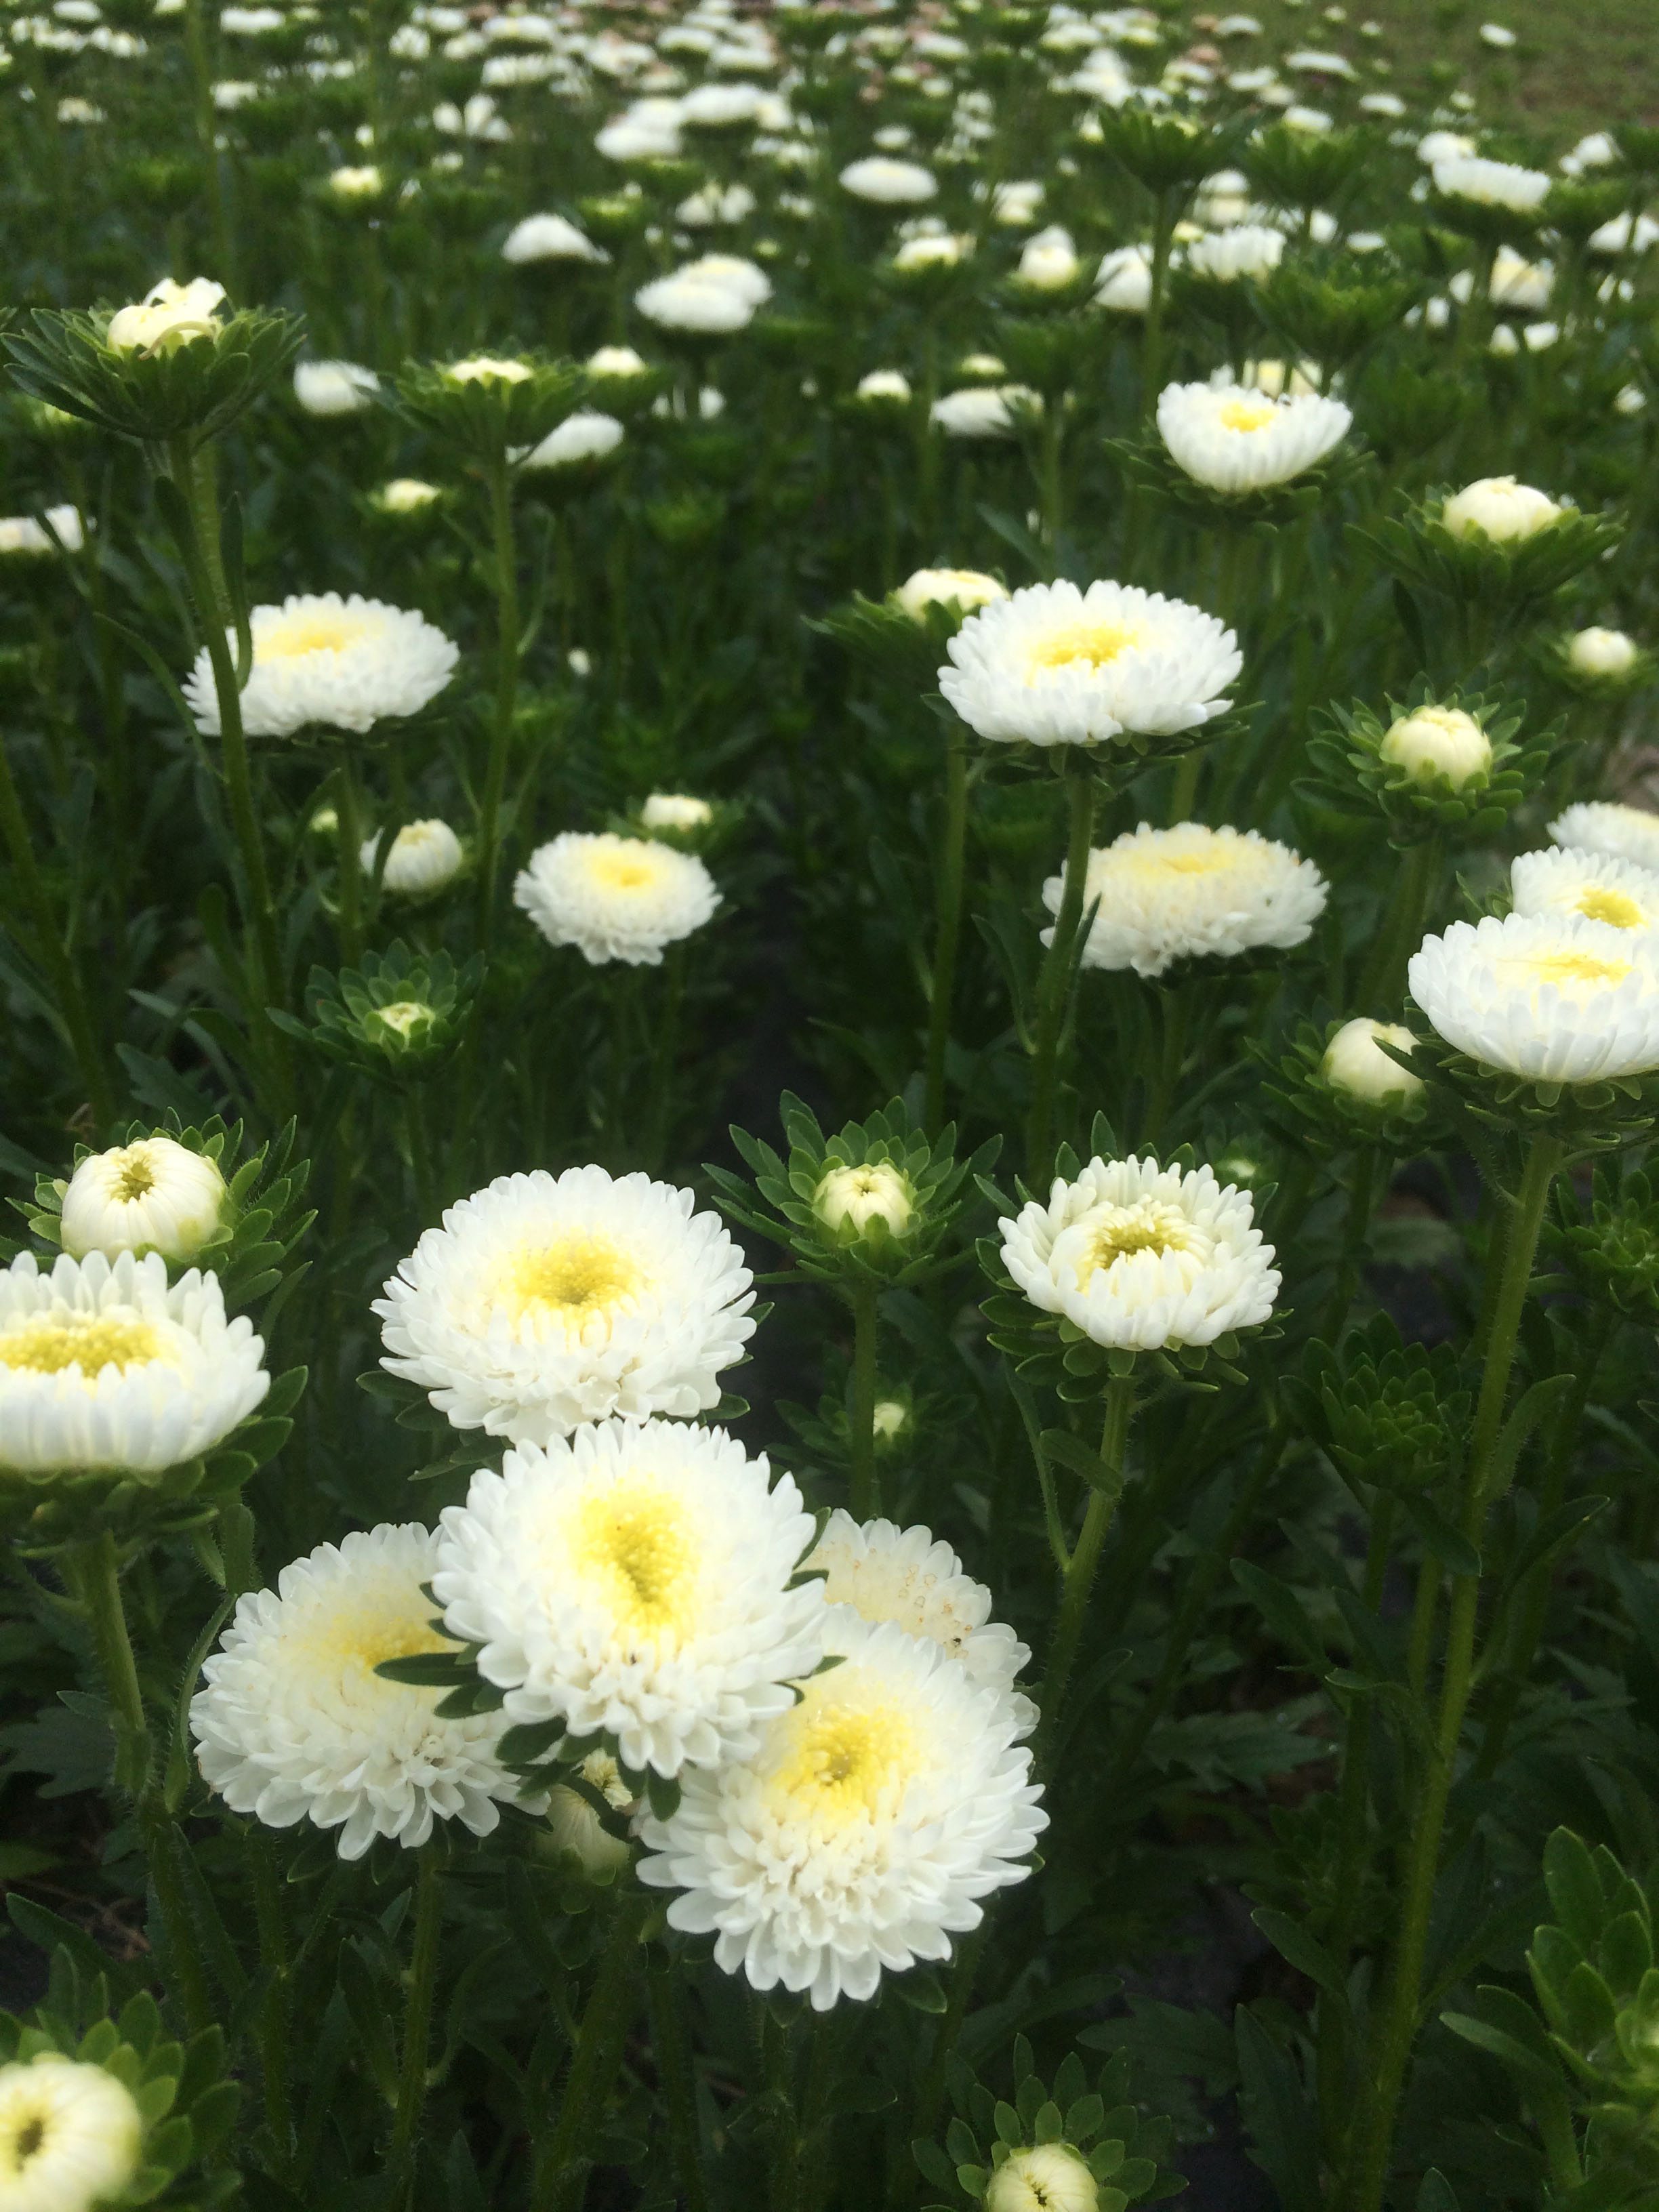 Snow white matsumoto asters are a perfect accent flower for a colorful summer bouquet.